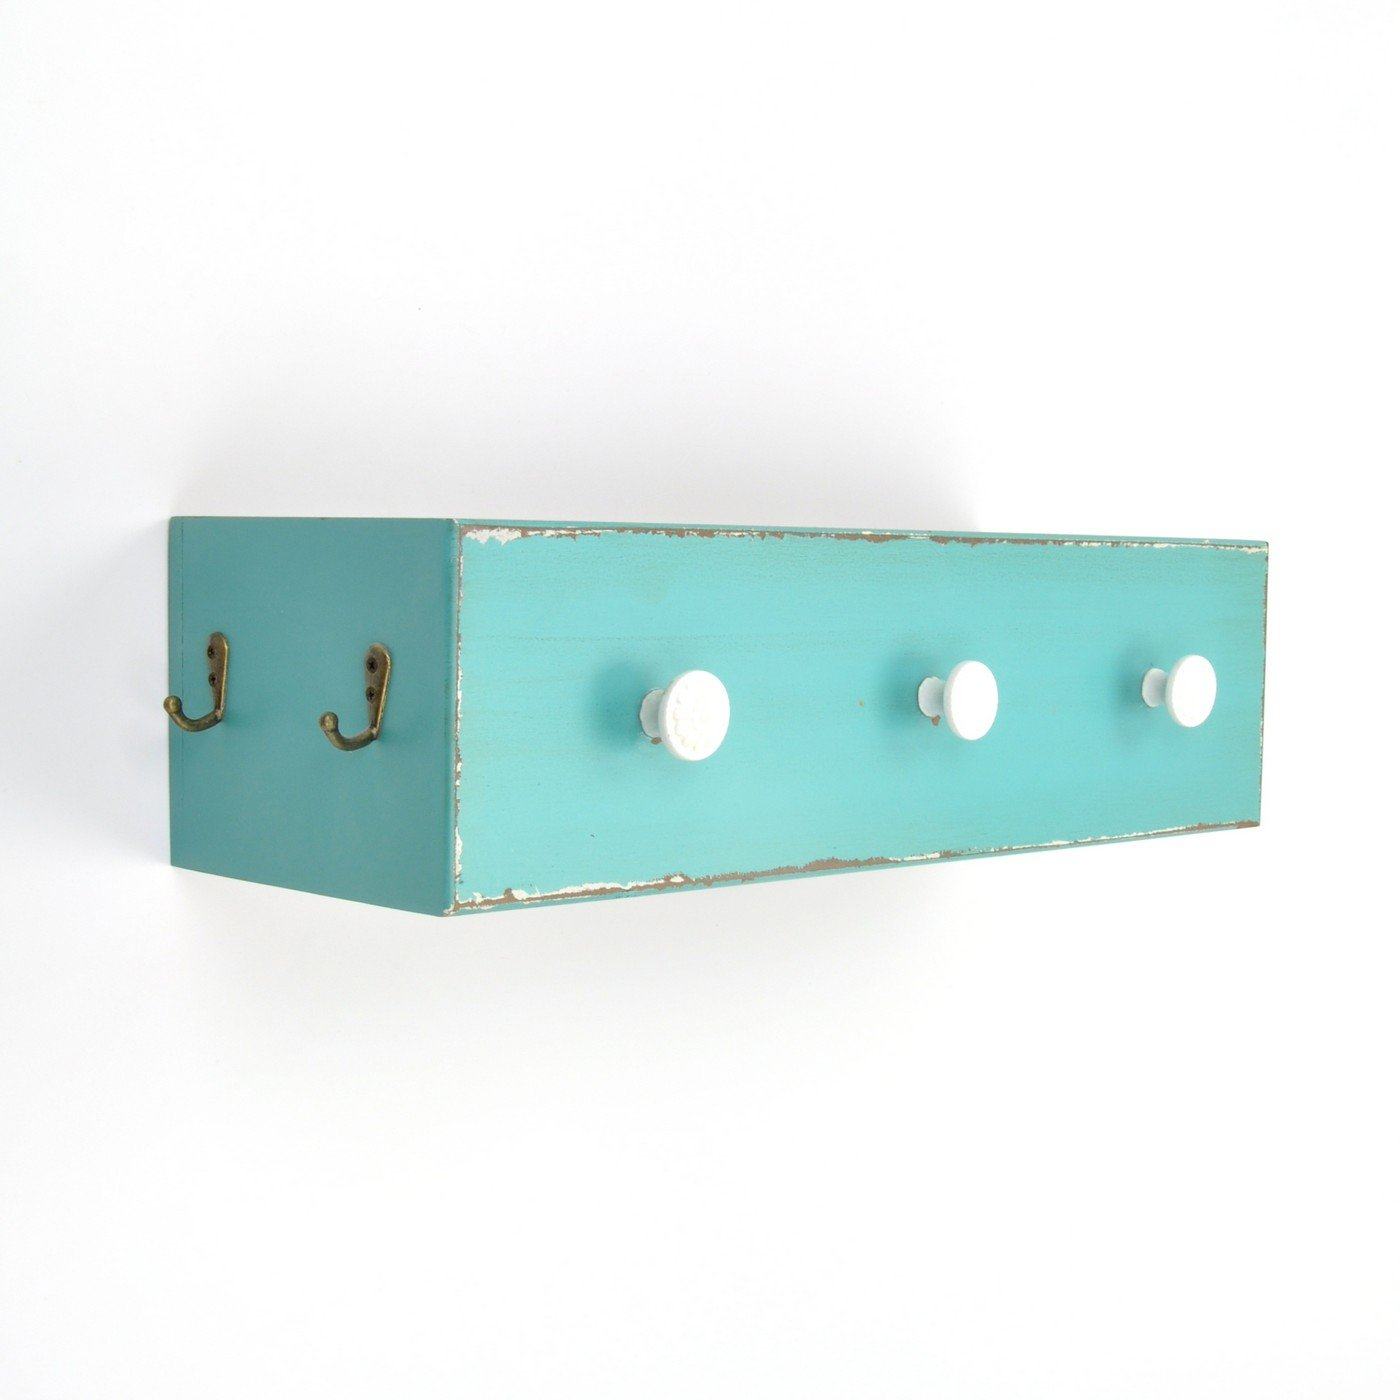 abodent.com Turquoise Wall Mounted Wood Storage Box Knobs Coat Rack, Wall Rack, Coat Hook Rack, Coat Robe Hat Clothes Wall Mounted Hook Hanger (Screws)